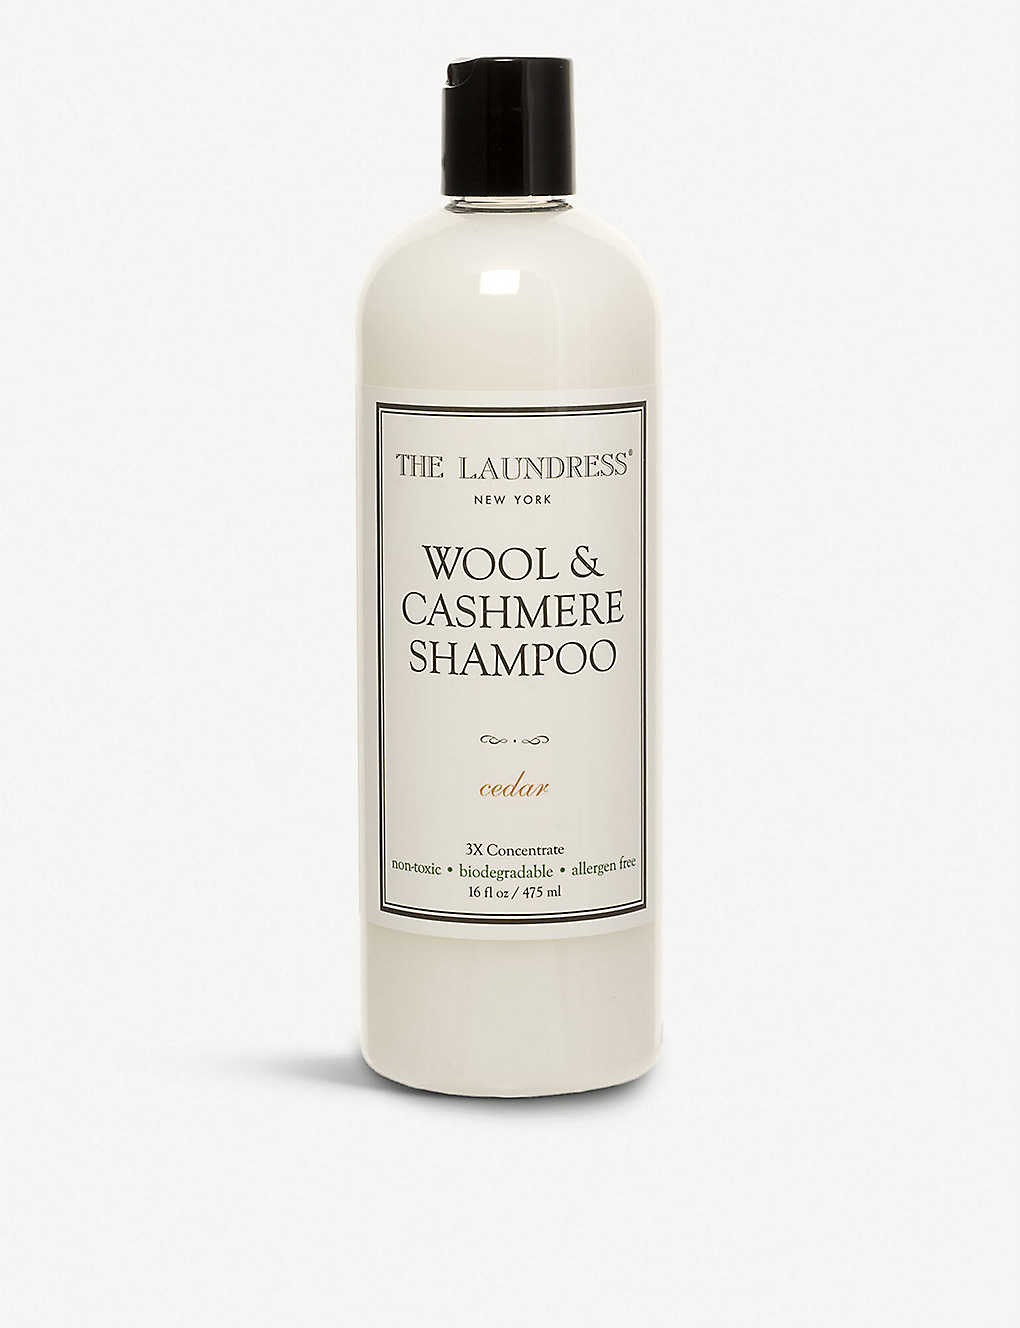 THE LAUNDRESS: Wool and Cashmere Shampoo 475ml